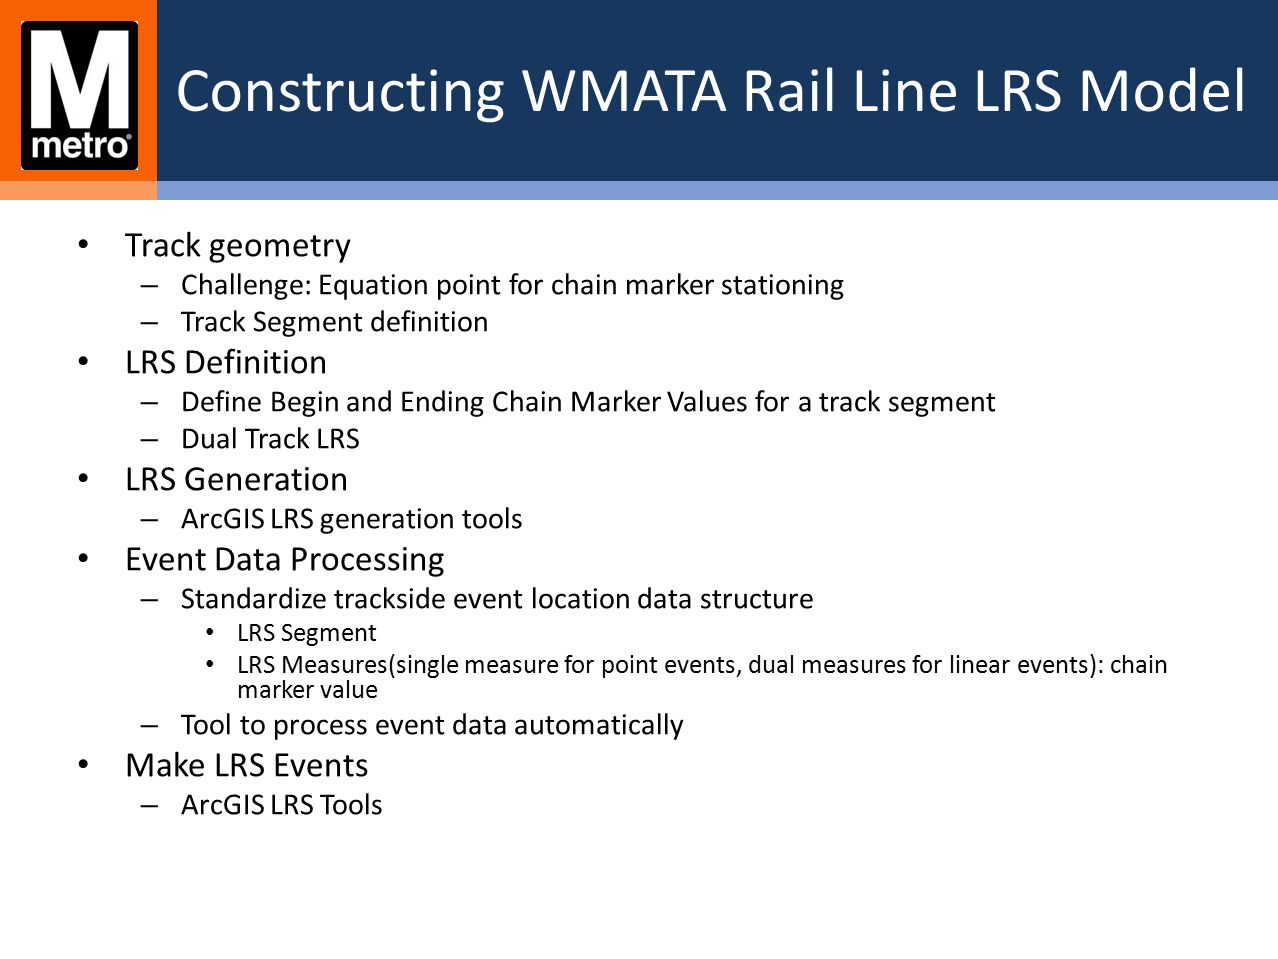 Constructing WMATA Rail Line LRS Model